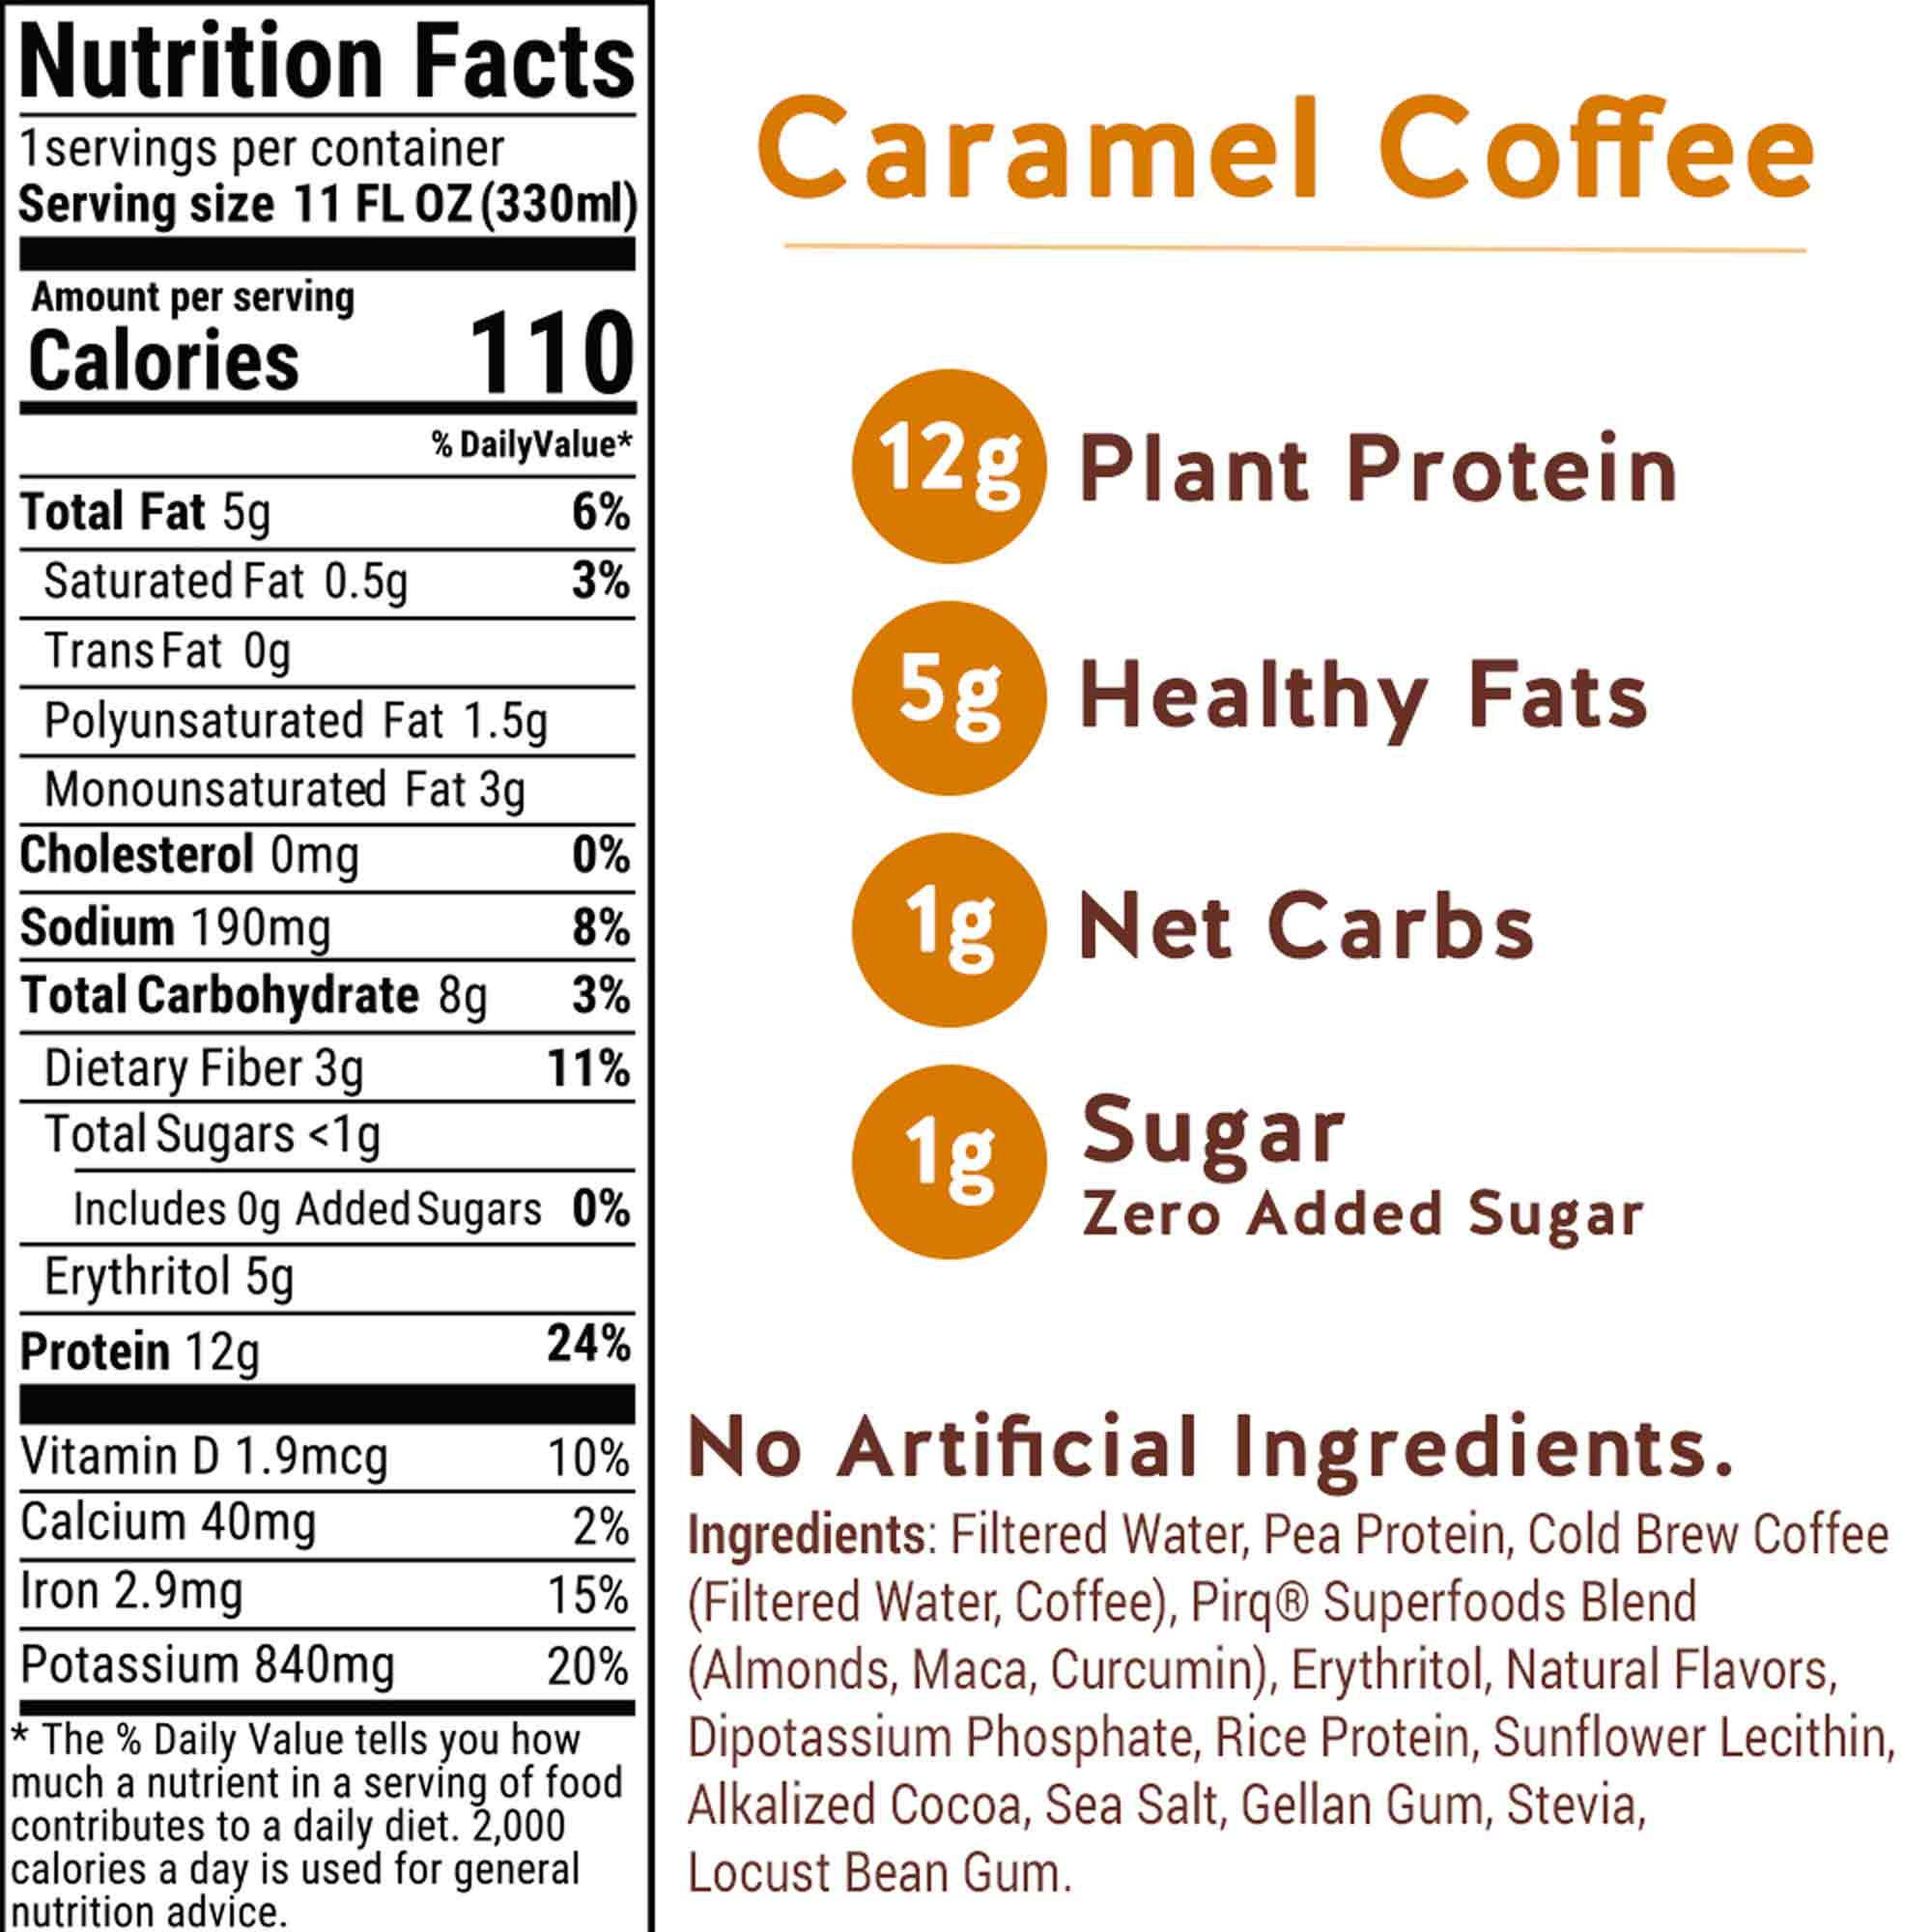 Pirq Caramel Coffee Snack Replacement Shake Nutrition Facts and Ingredients, 110 Calories, 5 Grams Healthy Fats, 12 Grams Plant Protein, 1 Gram Net Carbs, Zero Added Sugar